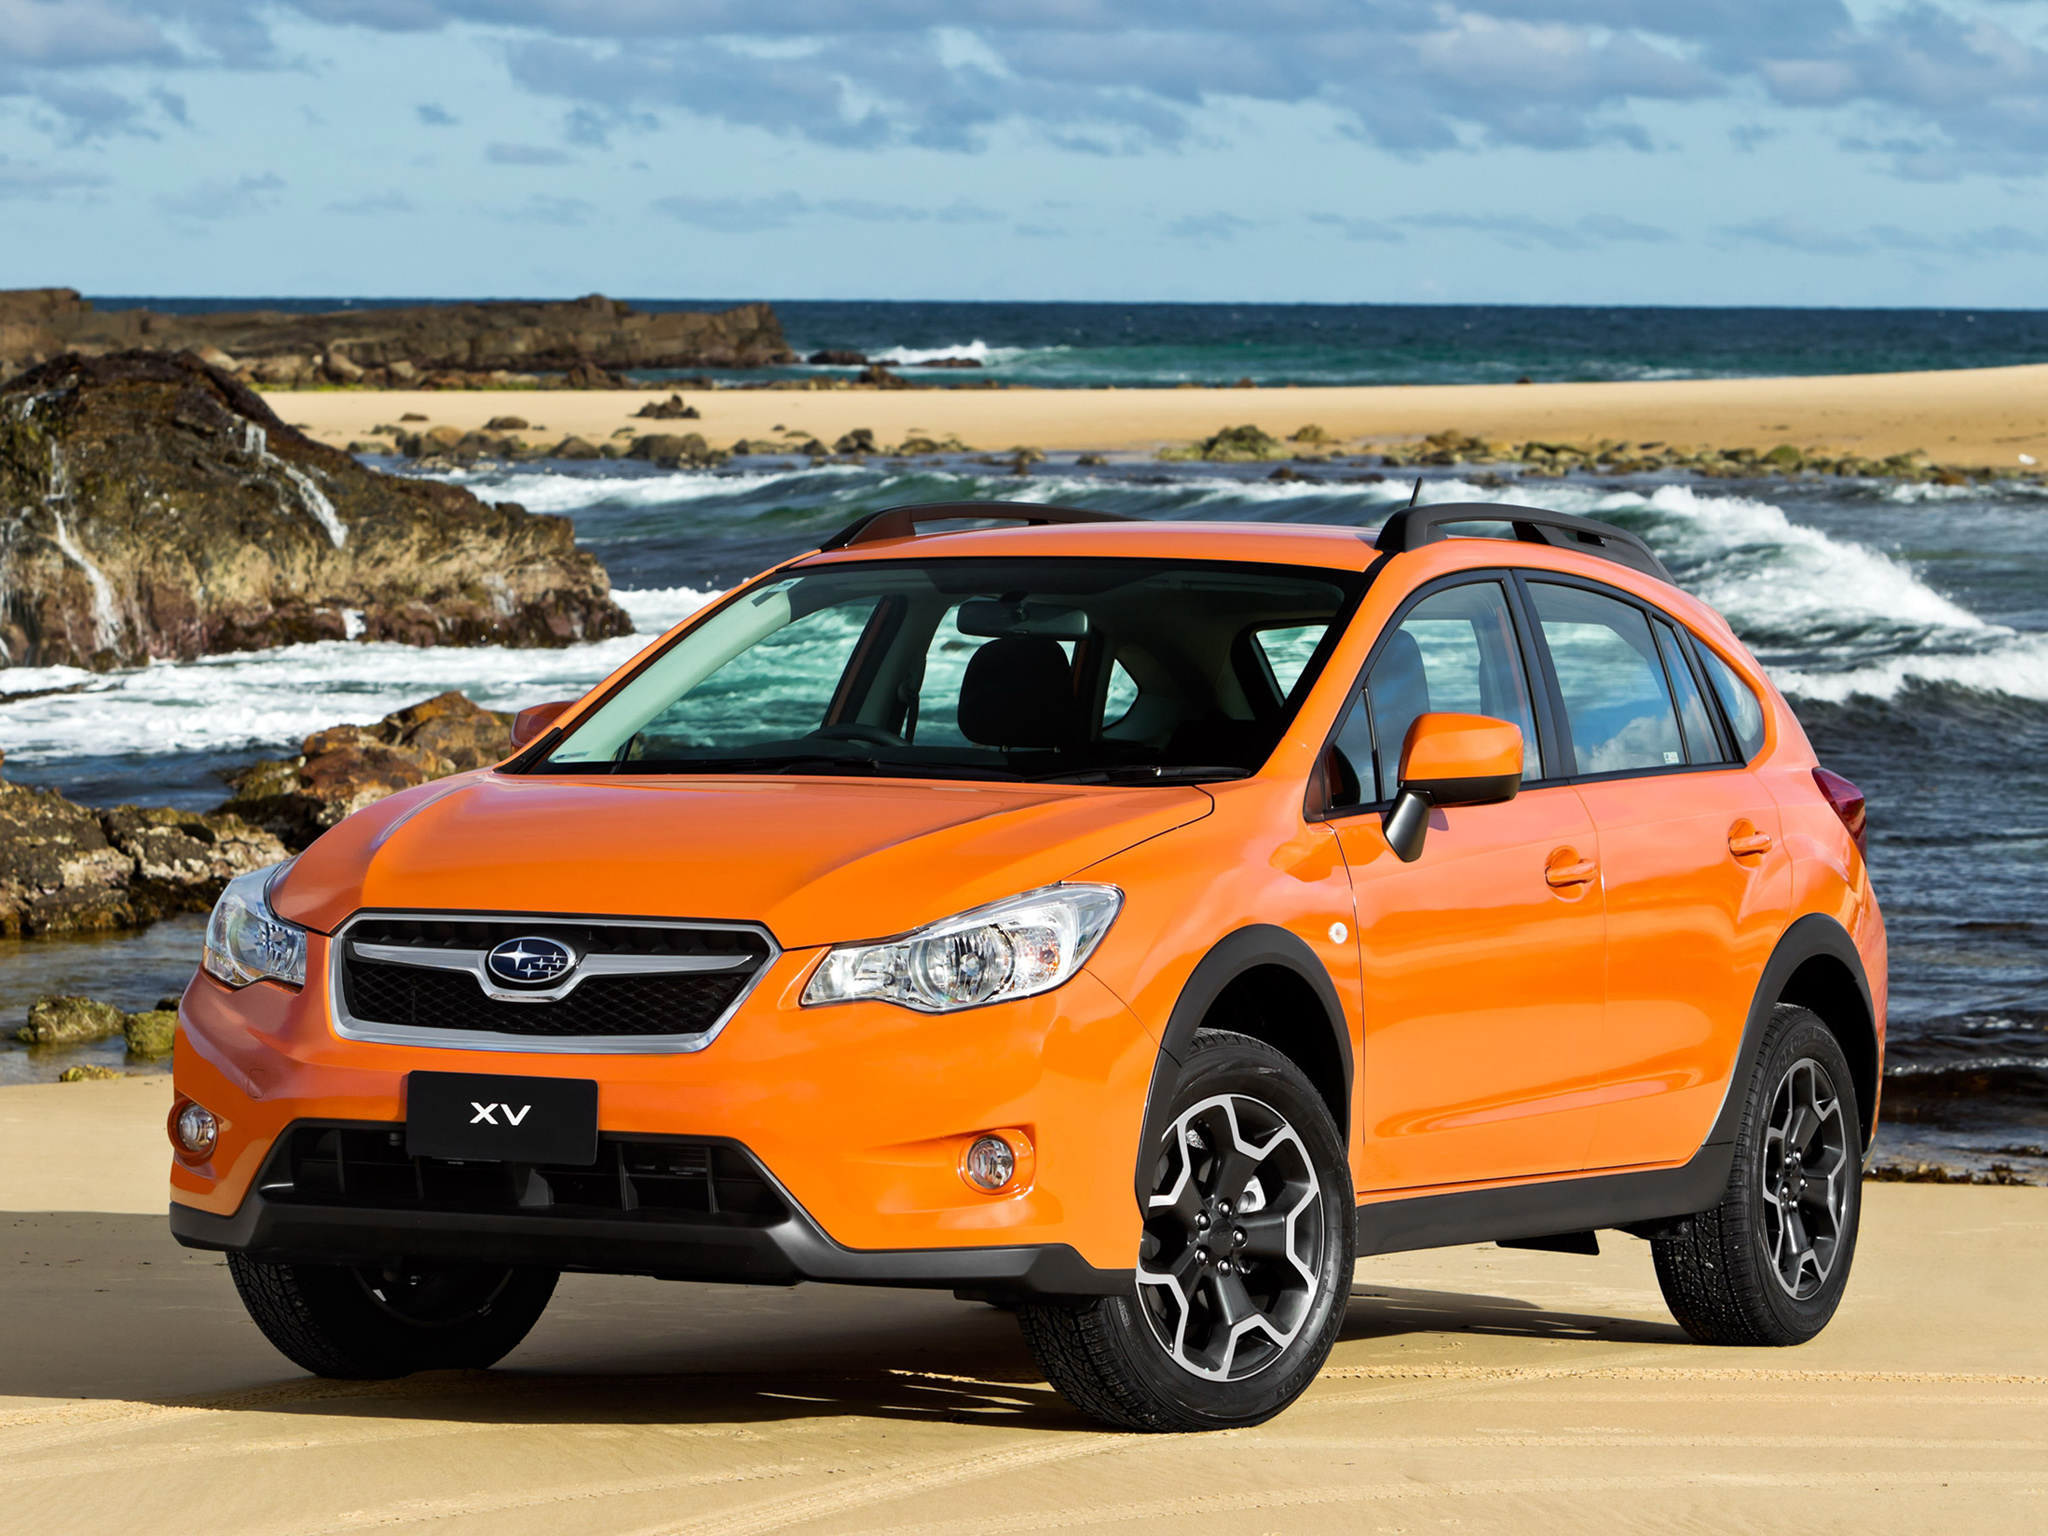 Image-result-for-subaru-crosstrek-orange-wallpaper-wp5207904